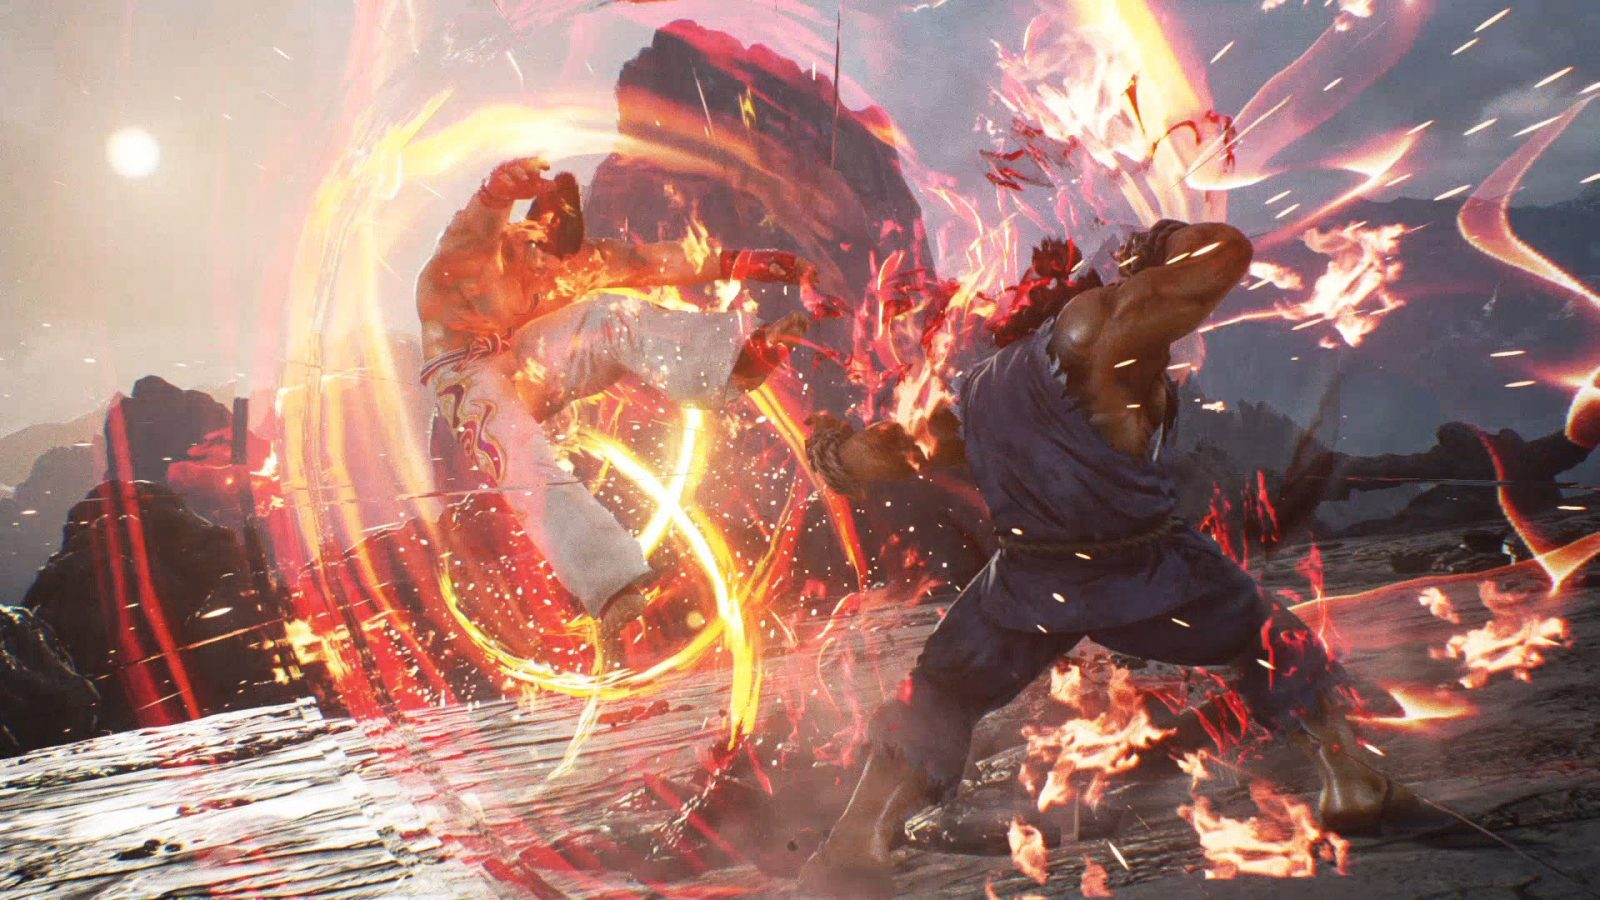 Tekken Producer Considers HD Collection, Wonders if People Really Need It